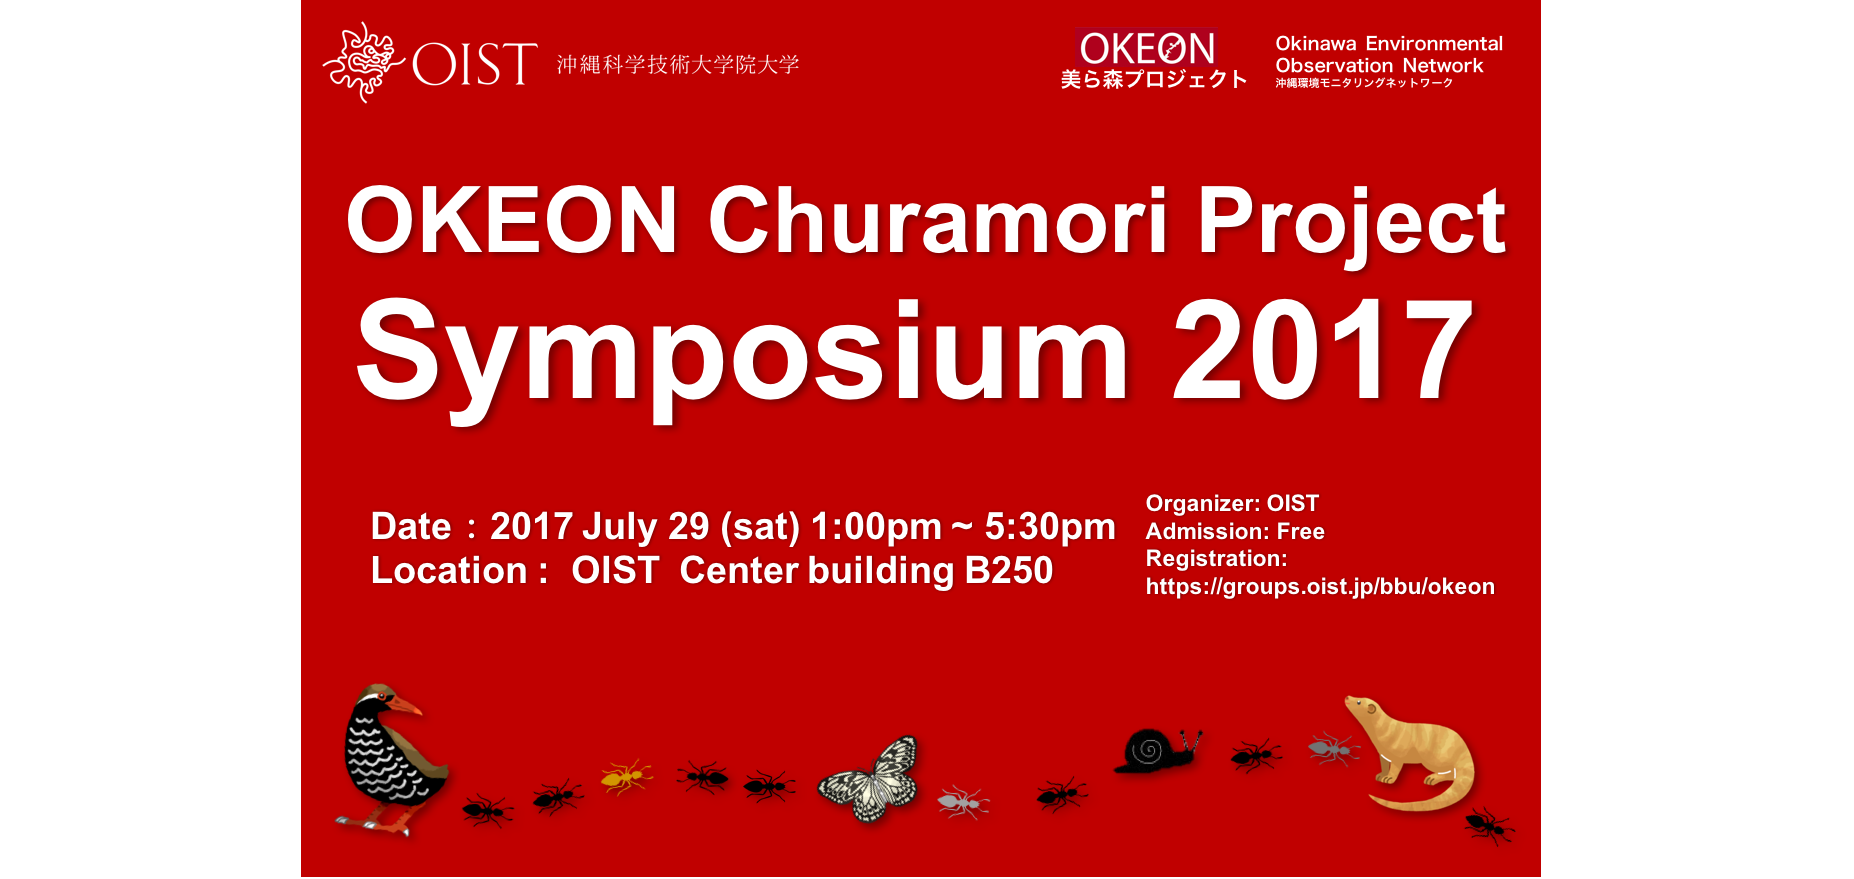 OKEON Churamori Project Symposium